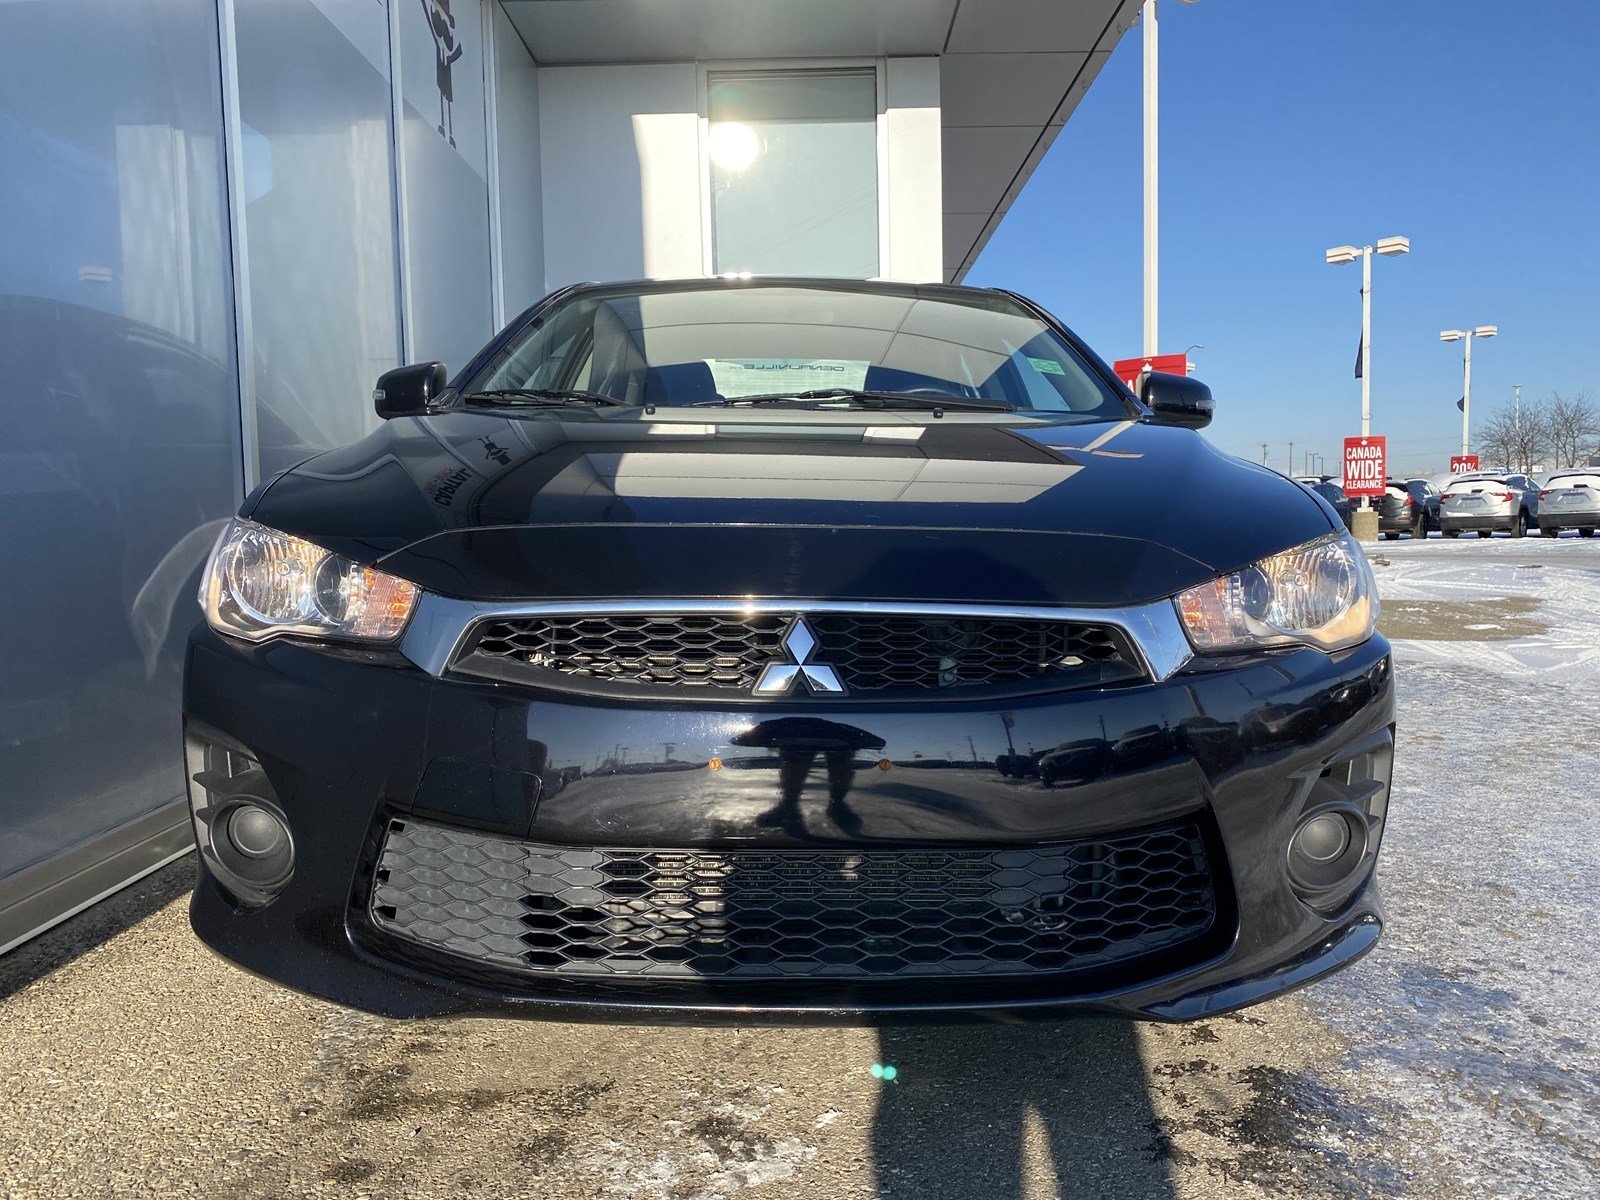 Certified Pre-Owned 2017 Mitsubishi Lancer ES HEATED SEATS BACKUP CAM $49 / WEEK PLUS GST